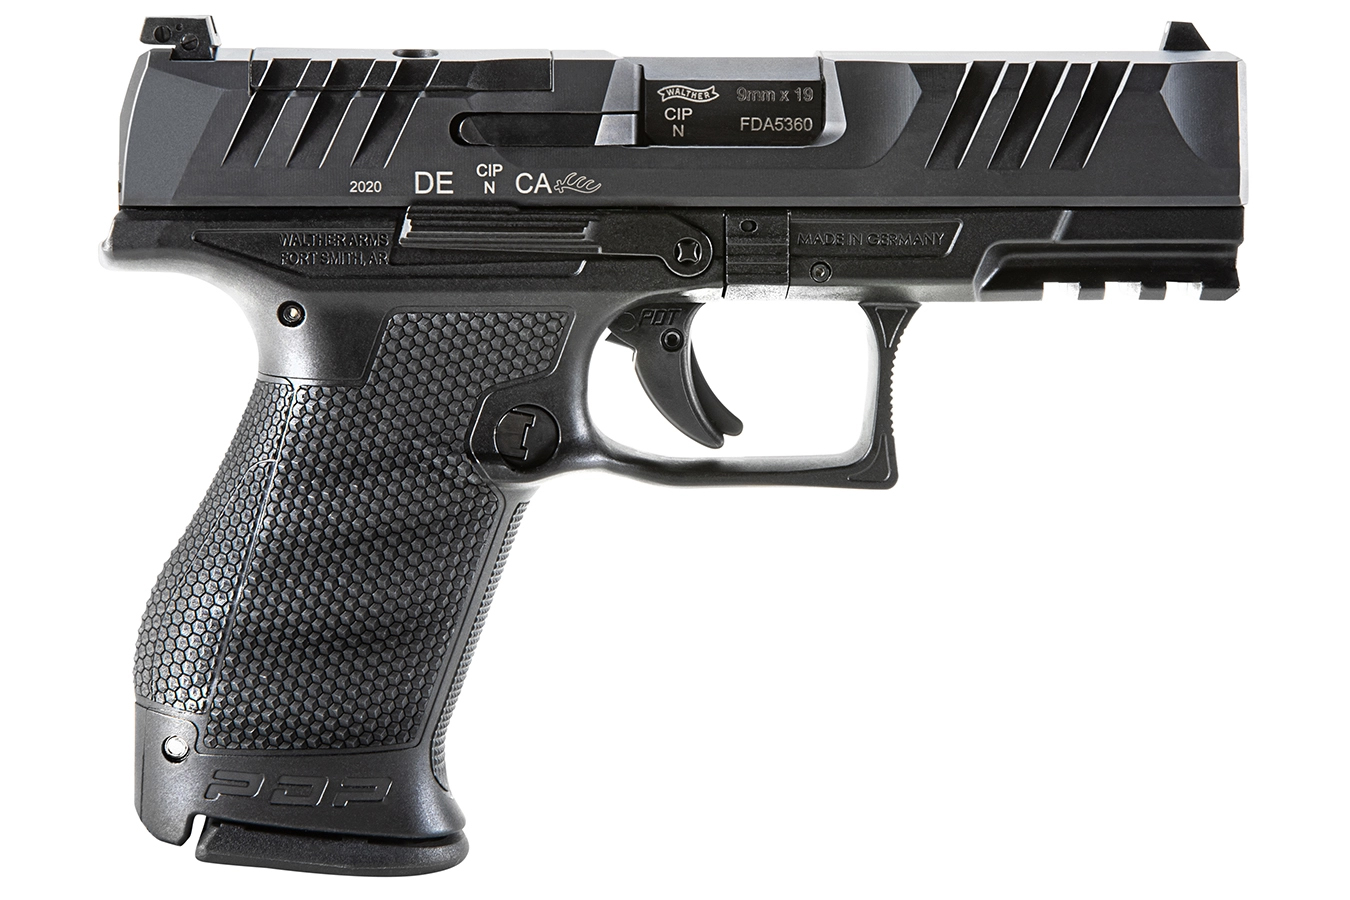 PDP COMPACT 9MM OPTICS READY PISTOL WITH TRITIUM SIGHTS AND THREE MAGS (LE)